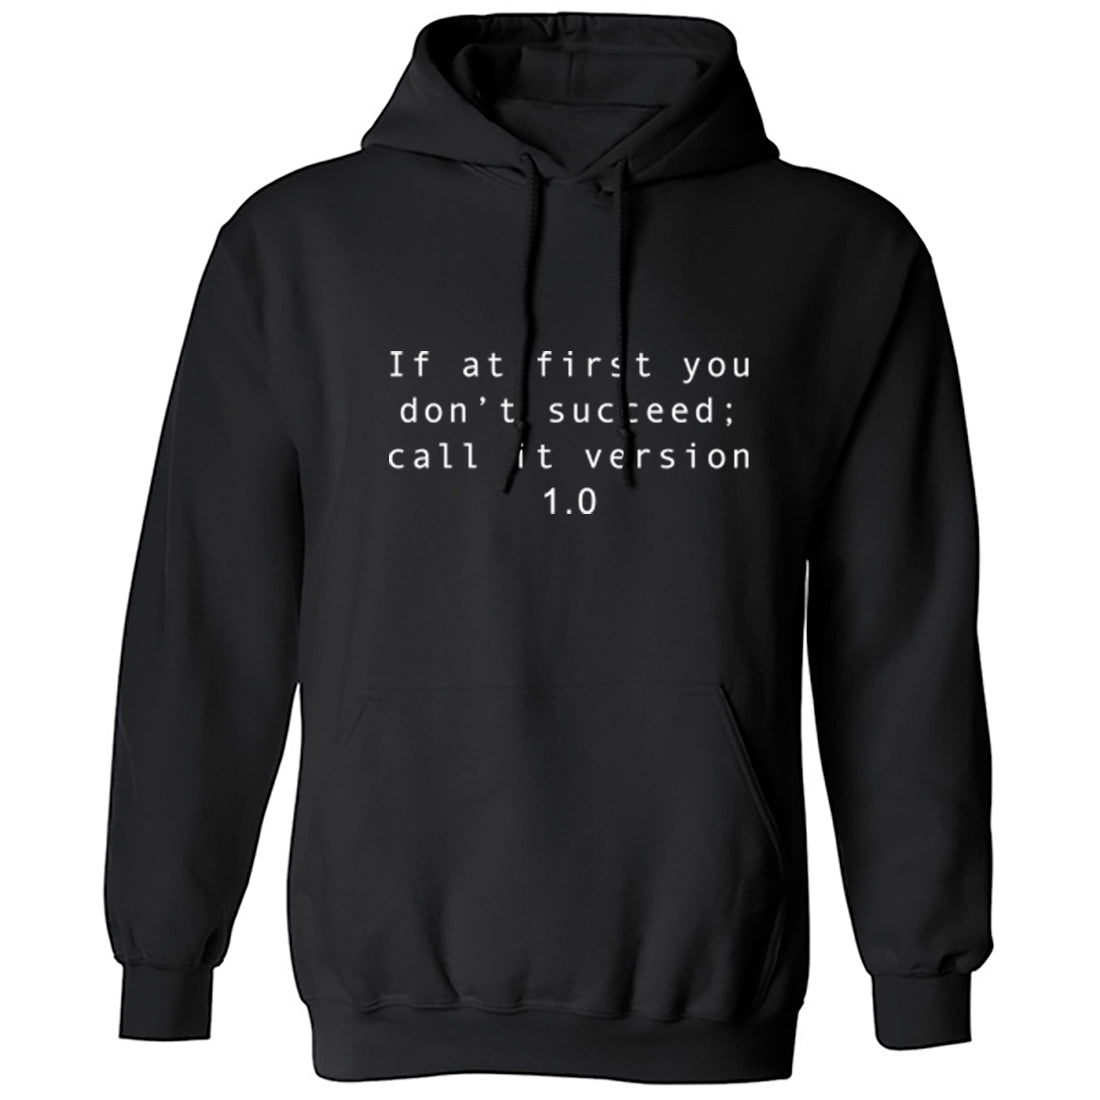 If At First You Don't Succeed; Call It Version 1.0 Unisex Hoodie K2440